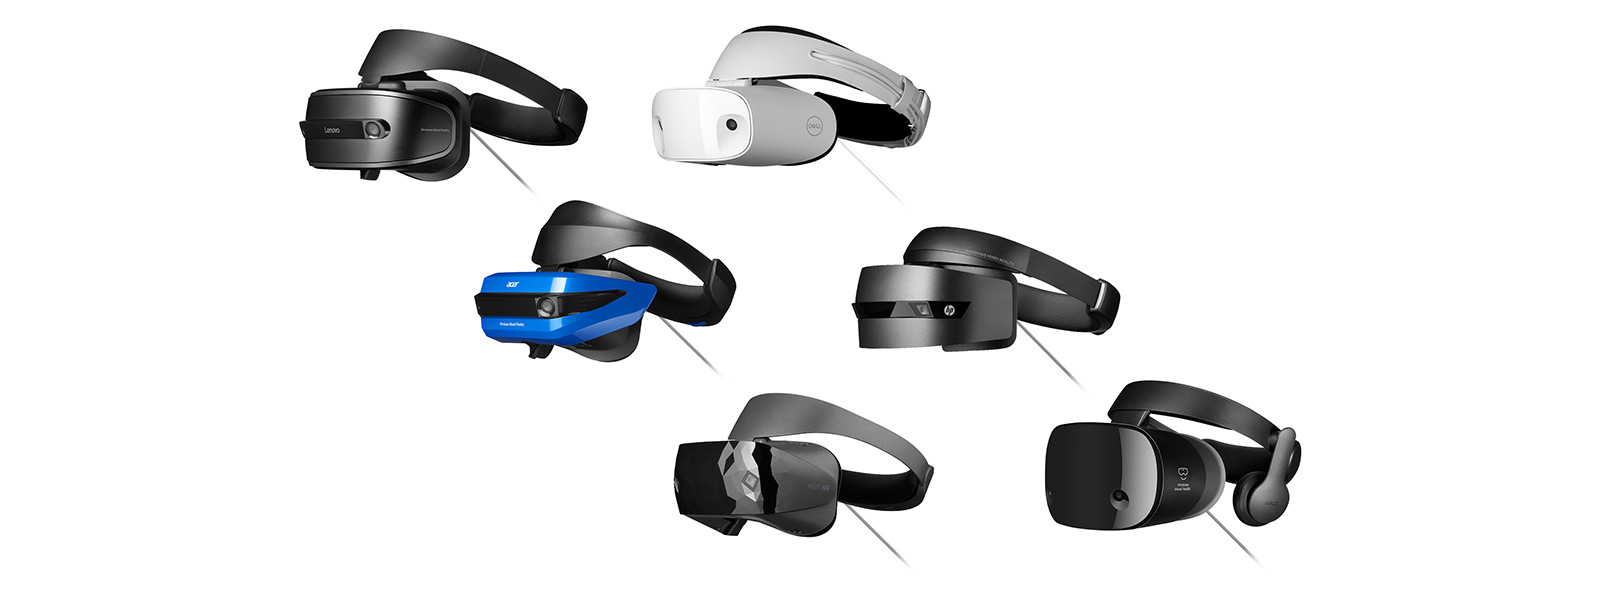 VR Buying Guide Part 2: High-end, Premium Headsets